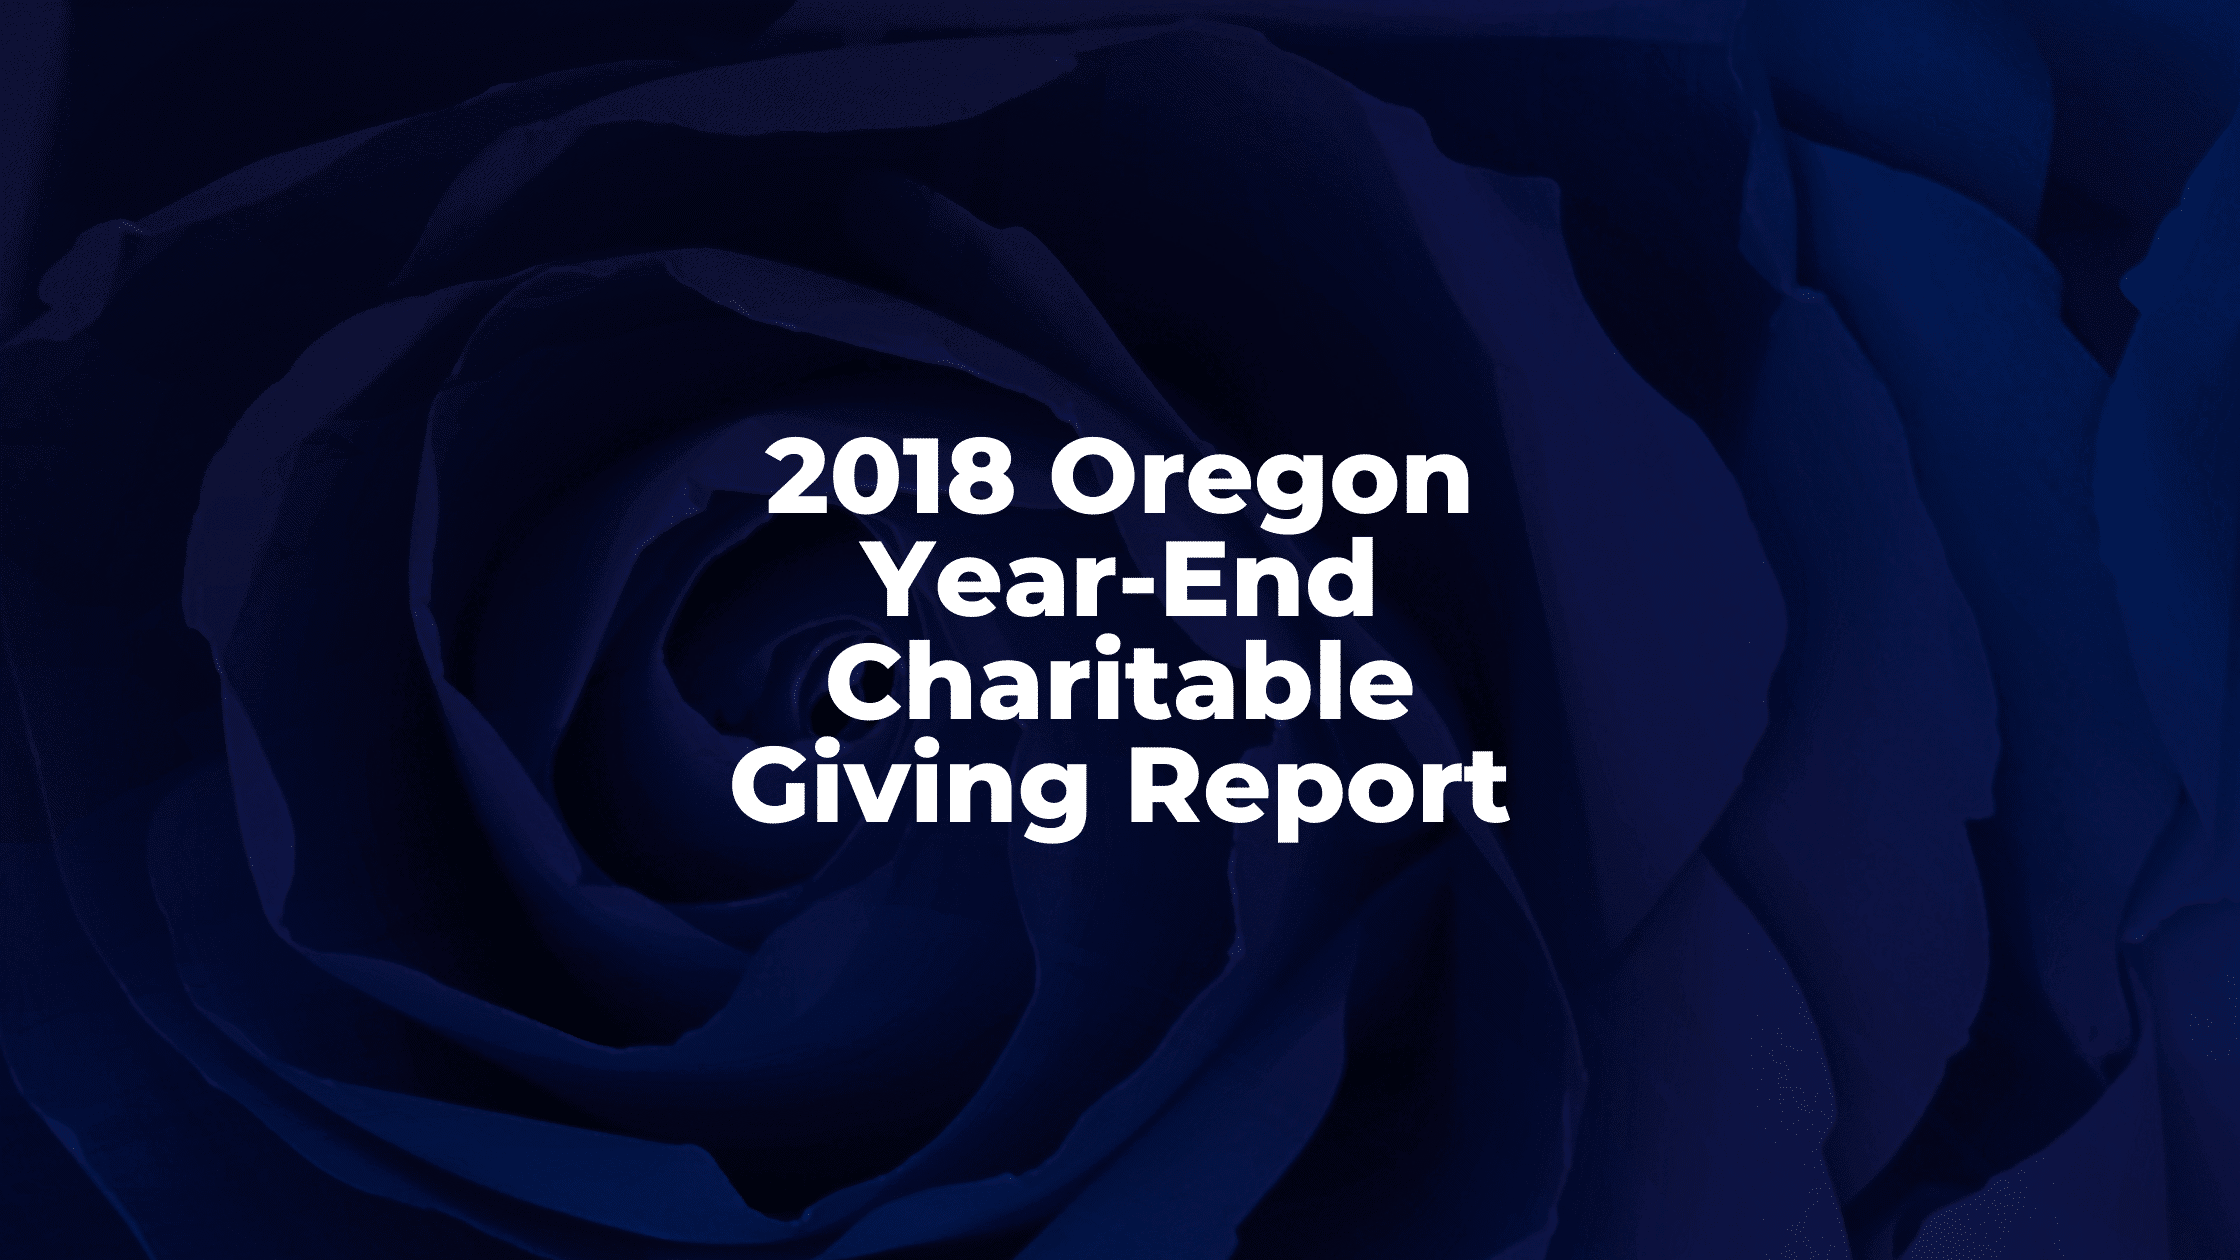 2018 Oregon Year-End Charitable Giving Report NAO